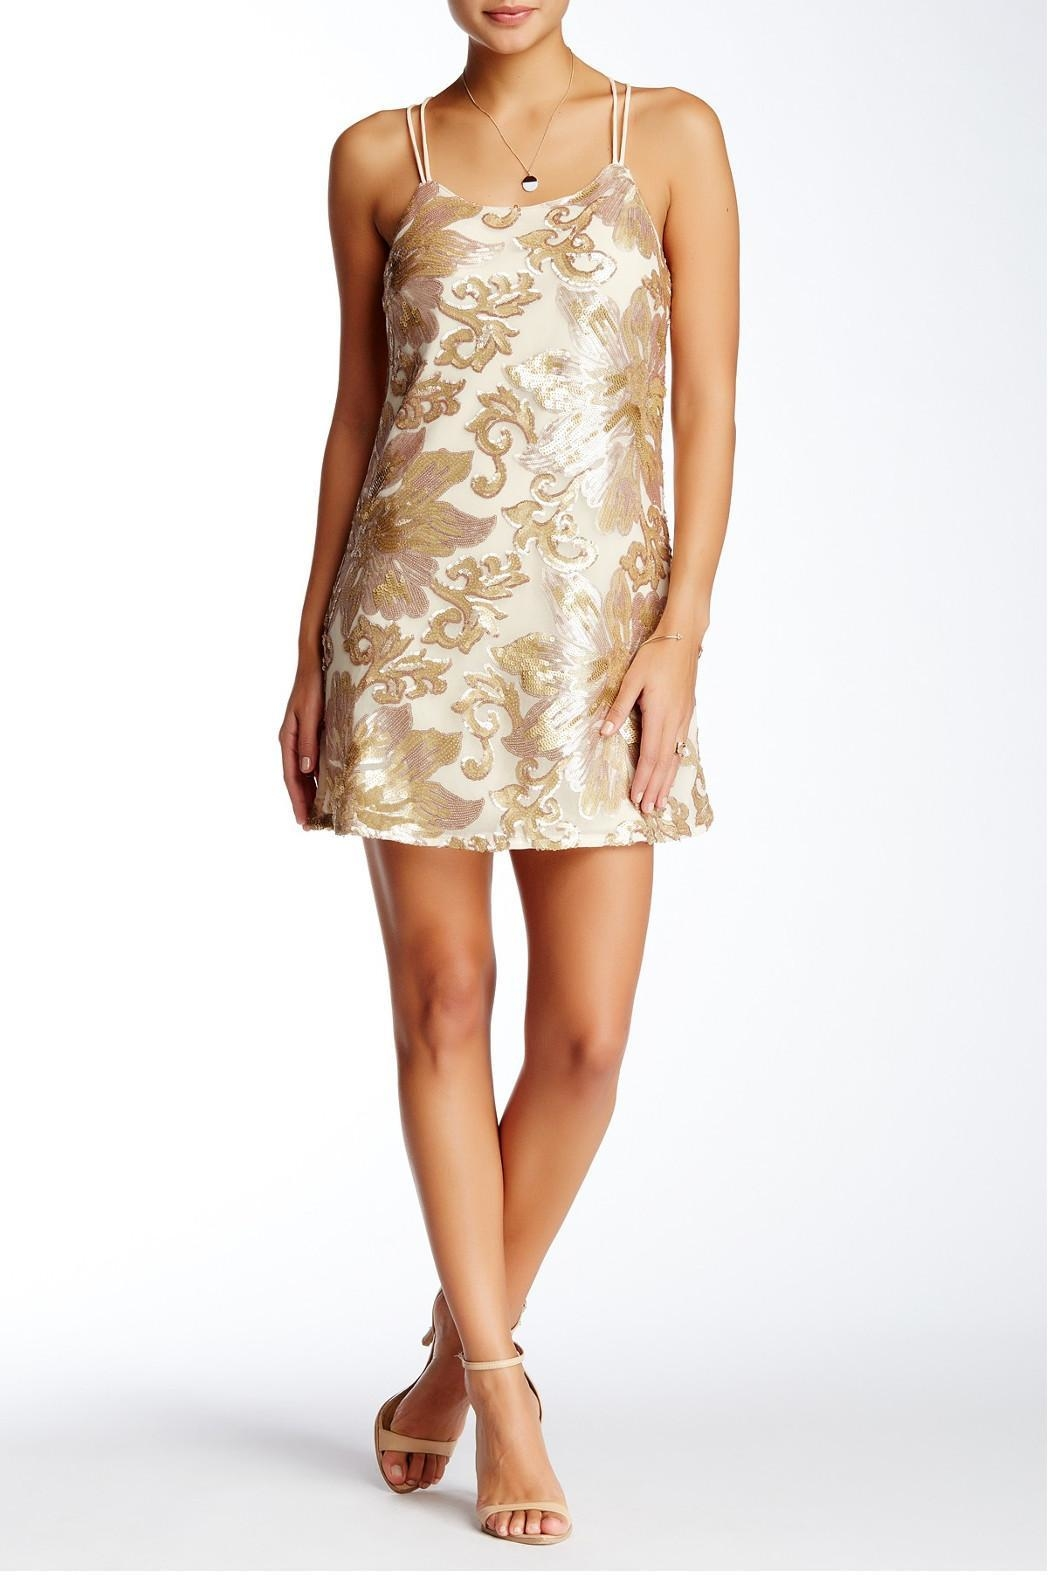 Soieblu Beige Sequins Dress - Main Image